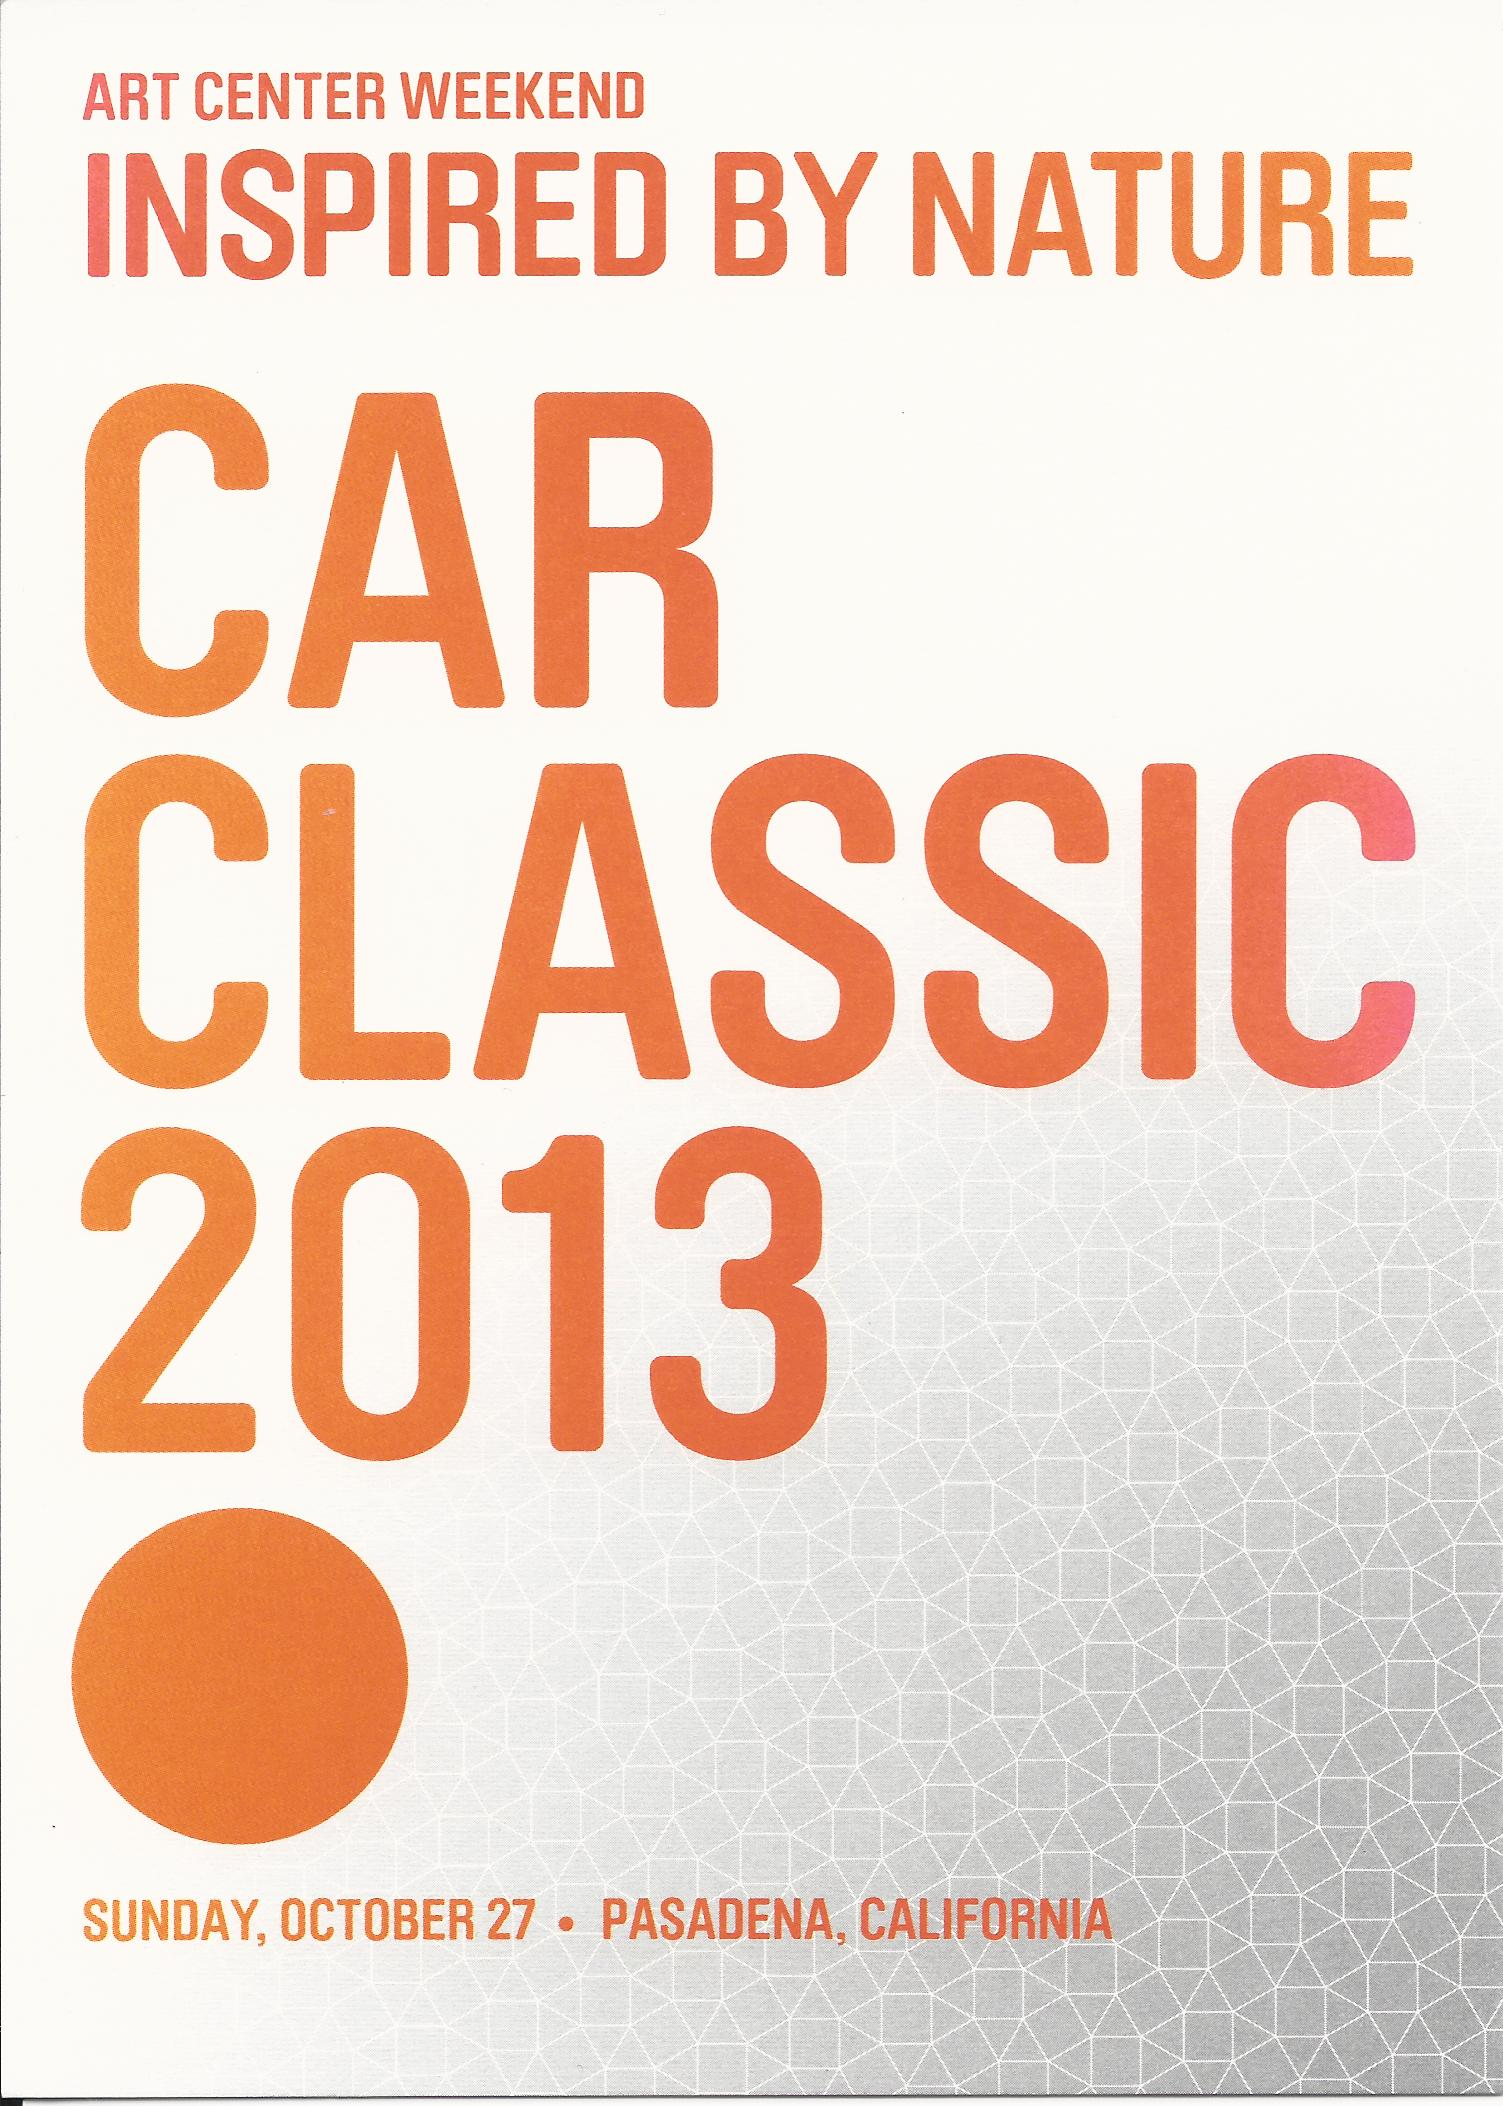 Art Center Car Classic 2013 – a Don't Miss Show